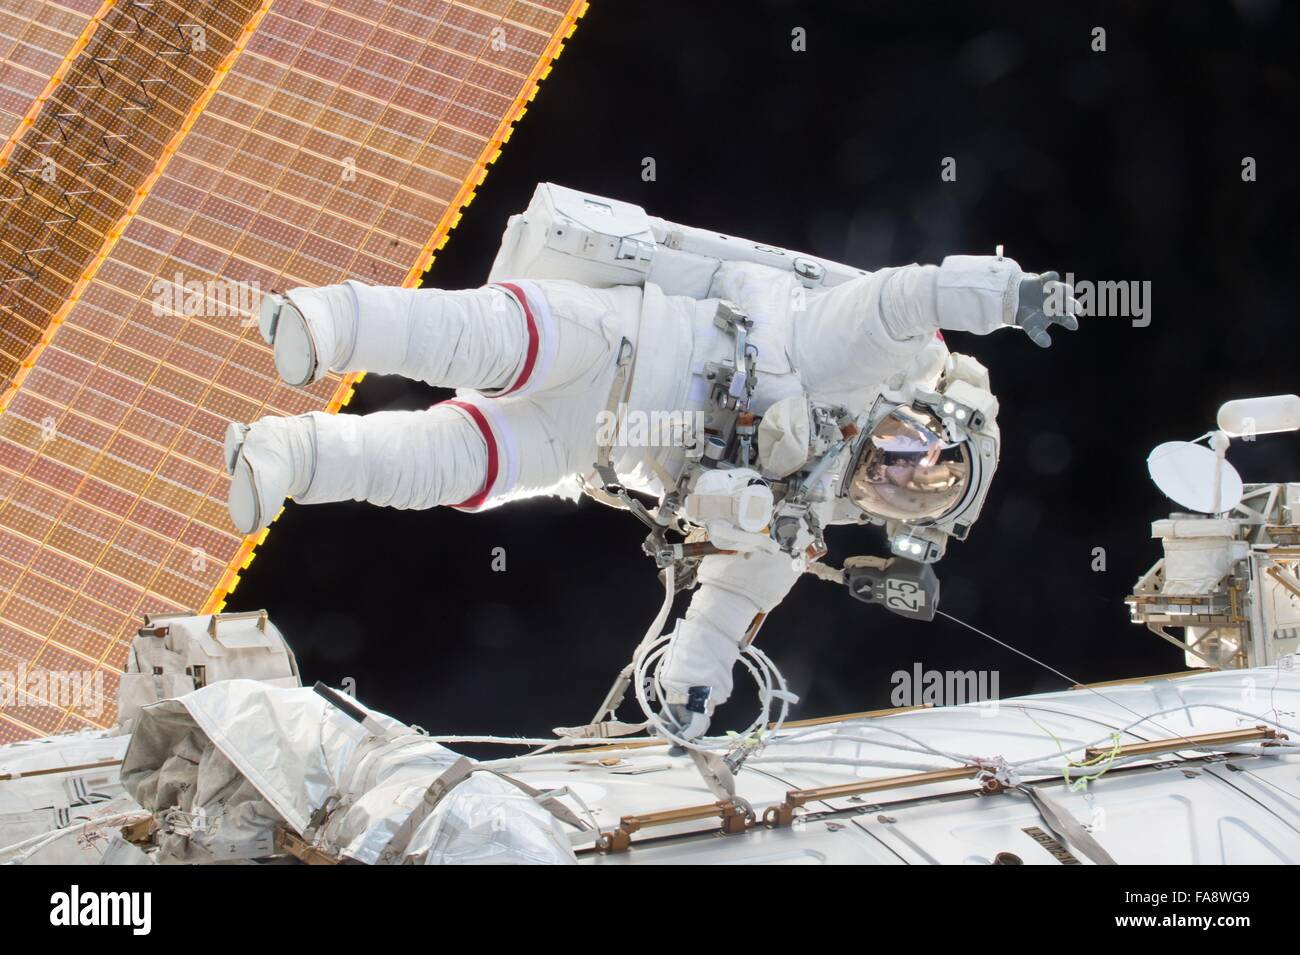 American astronaut Tim Kopra during a 3-hour space walk outside the International Space Station December 21, 2015 - Stock Image